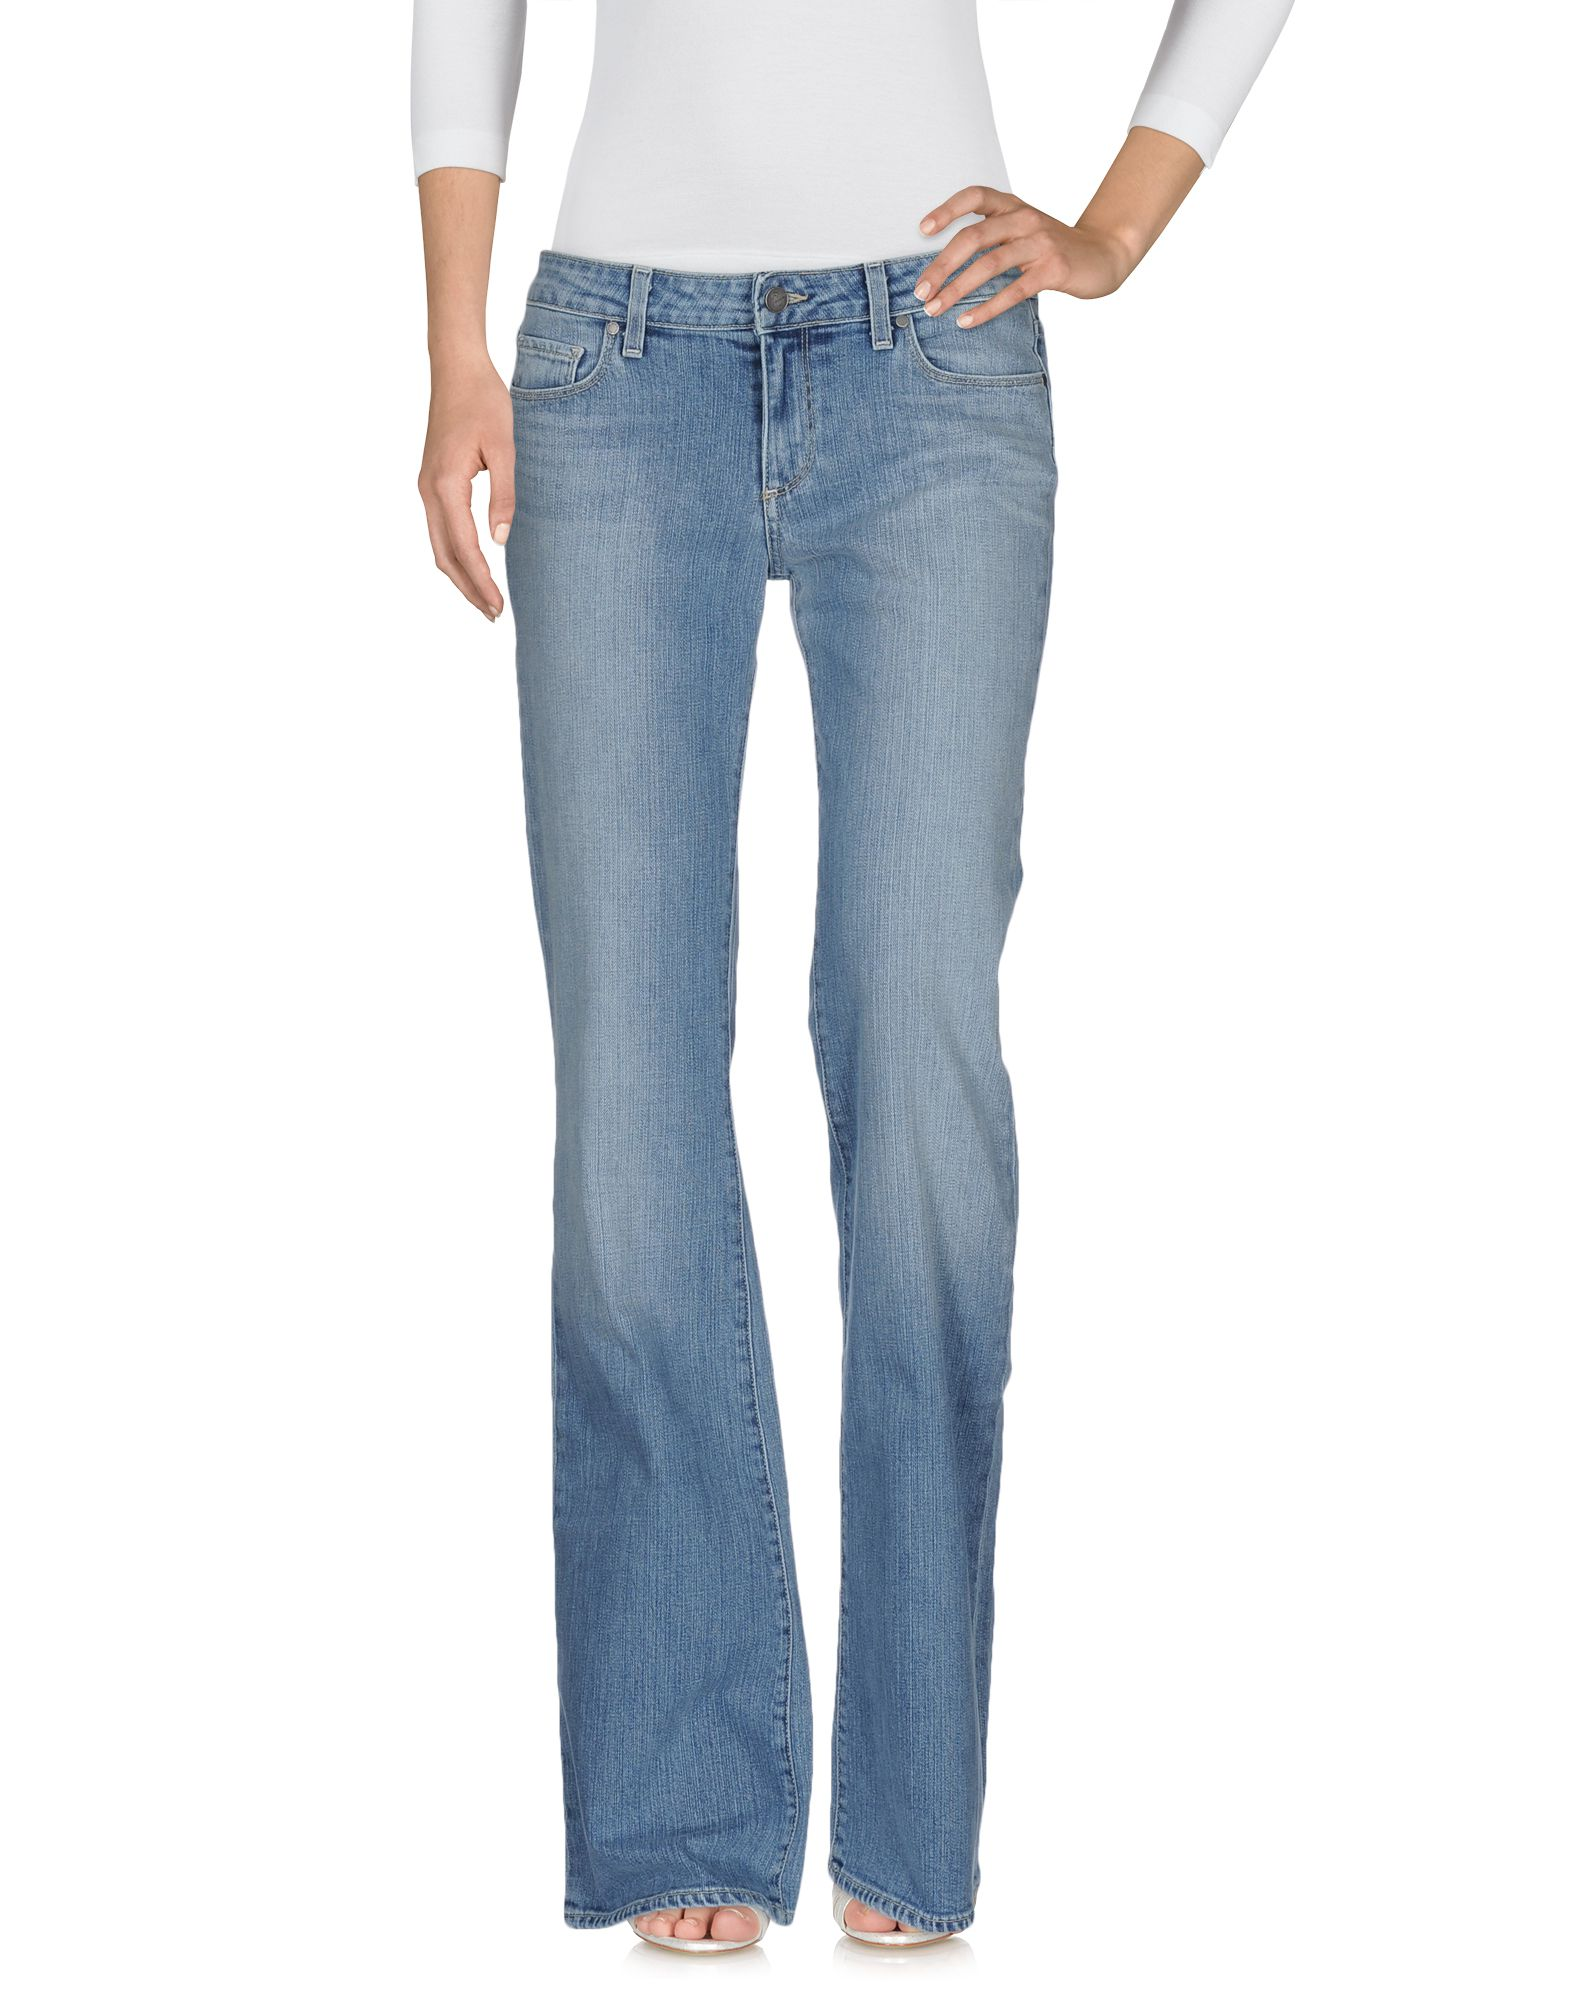 PAIGE PREMIUM DENIM Denim Pants in Blue